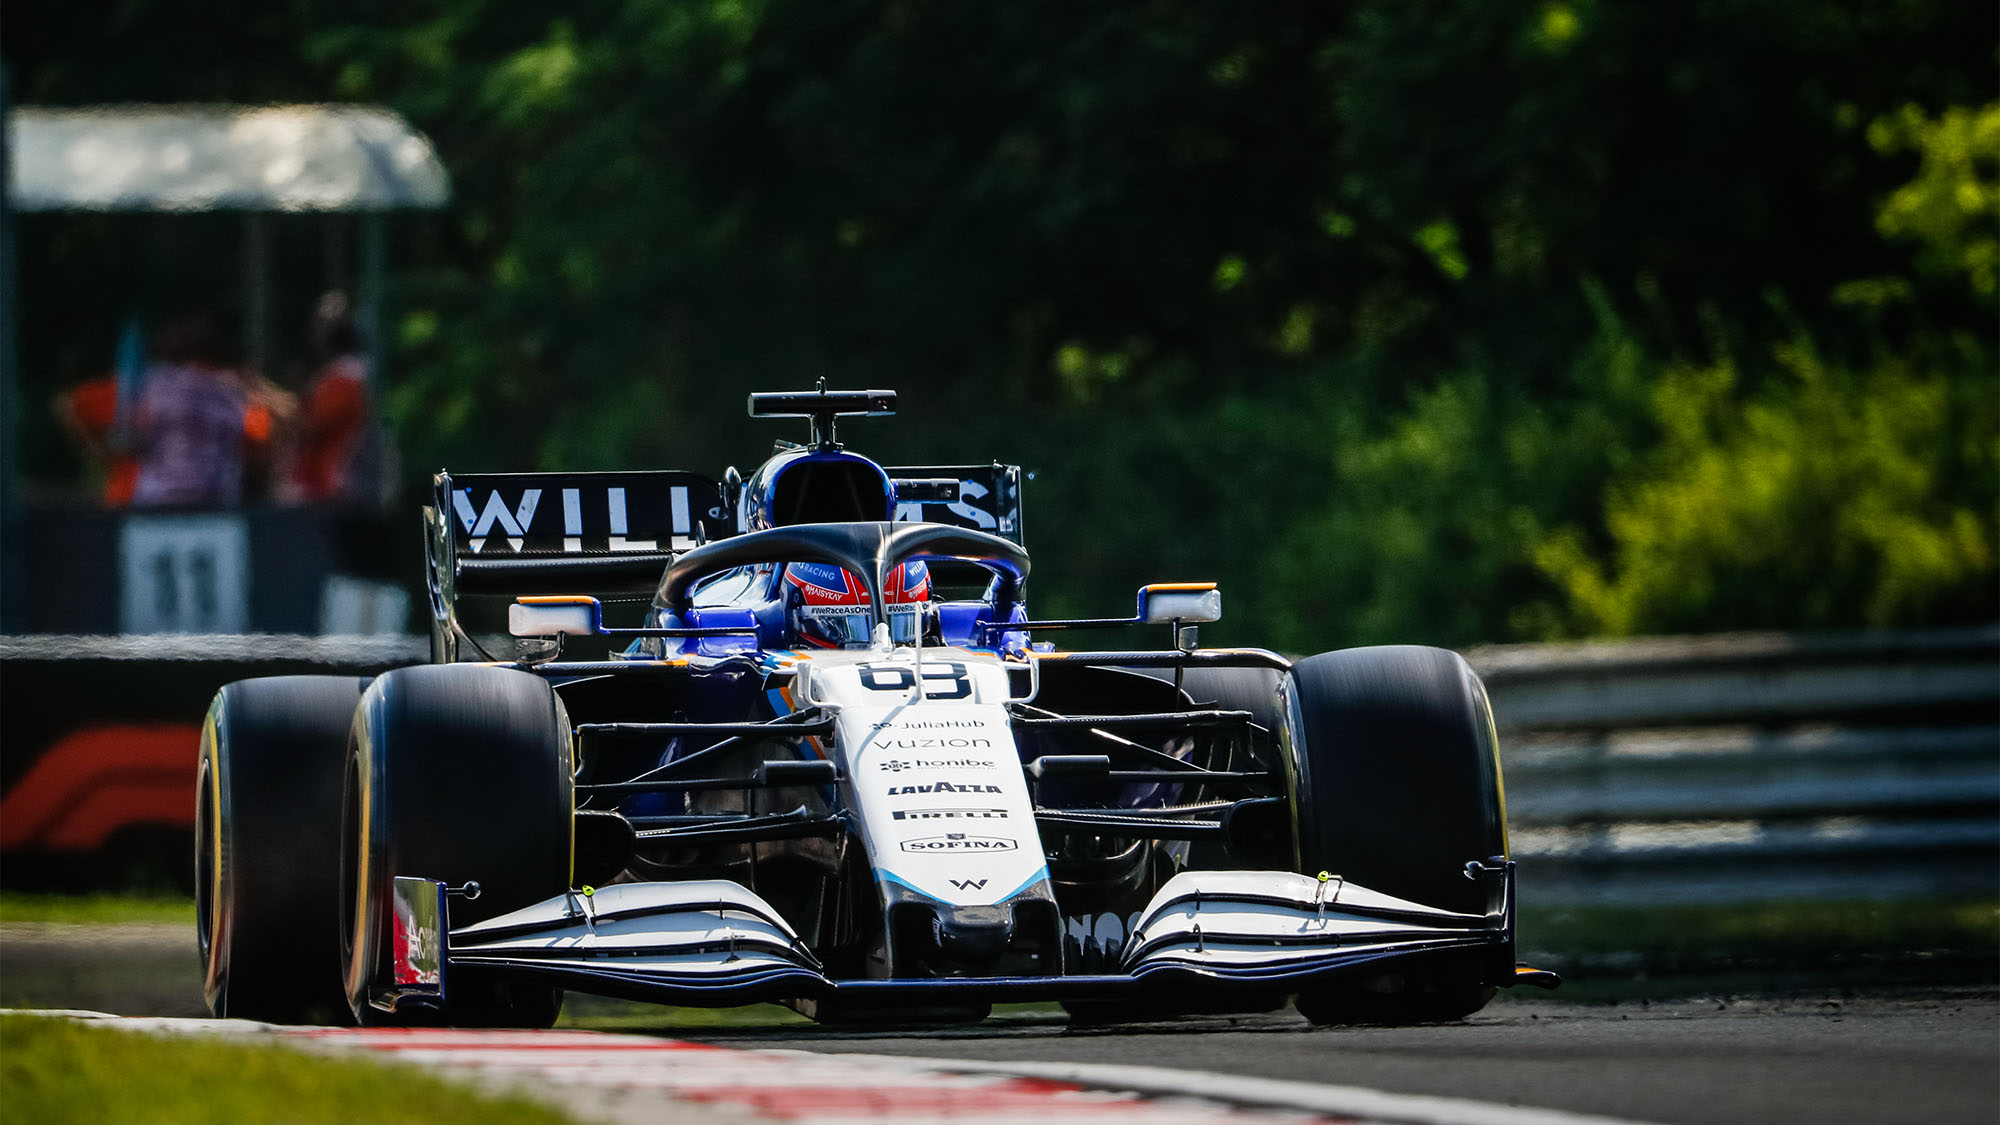 63 RUSSELL George (gbr), Williams Racing F1 FW43B, action during the Formula 1 Magyar Nagydij 2021, Hungarian Grand Prix, 11th round of the 2021 FIA Formula One World Championship from July 30 to August 1, 2021 on the Hungaroring, in Mogyorod, near Budapest, Hungary - Photo Antonin Vincent / DPPI